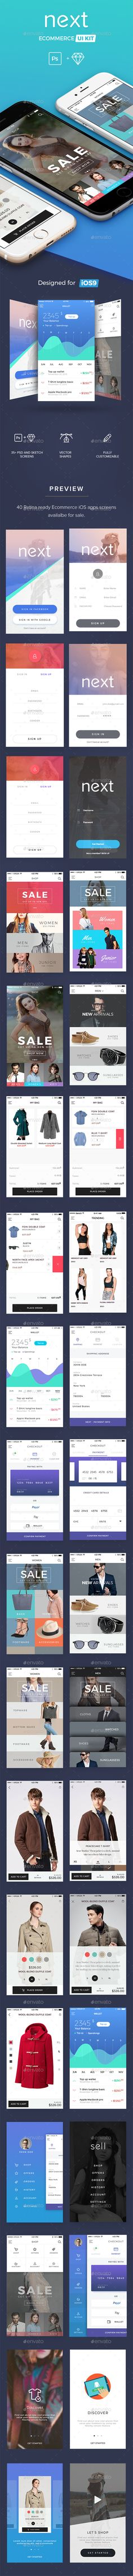 Next Ecommerce UI Kit - User Interfaces Web Element Template PSD. Download here: http://graphicriver.net/item/next-ecommerce-ui-kit/16634692?s_rank=226&ref=yinkira